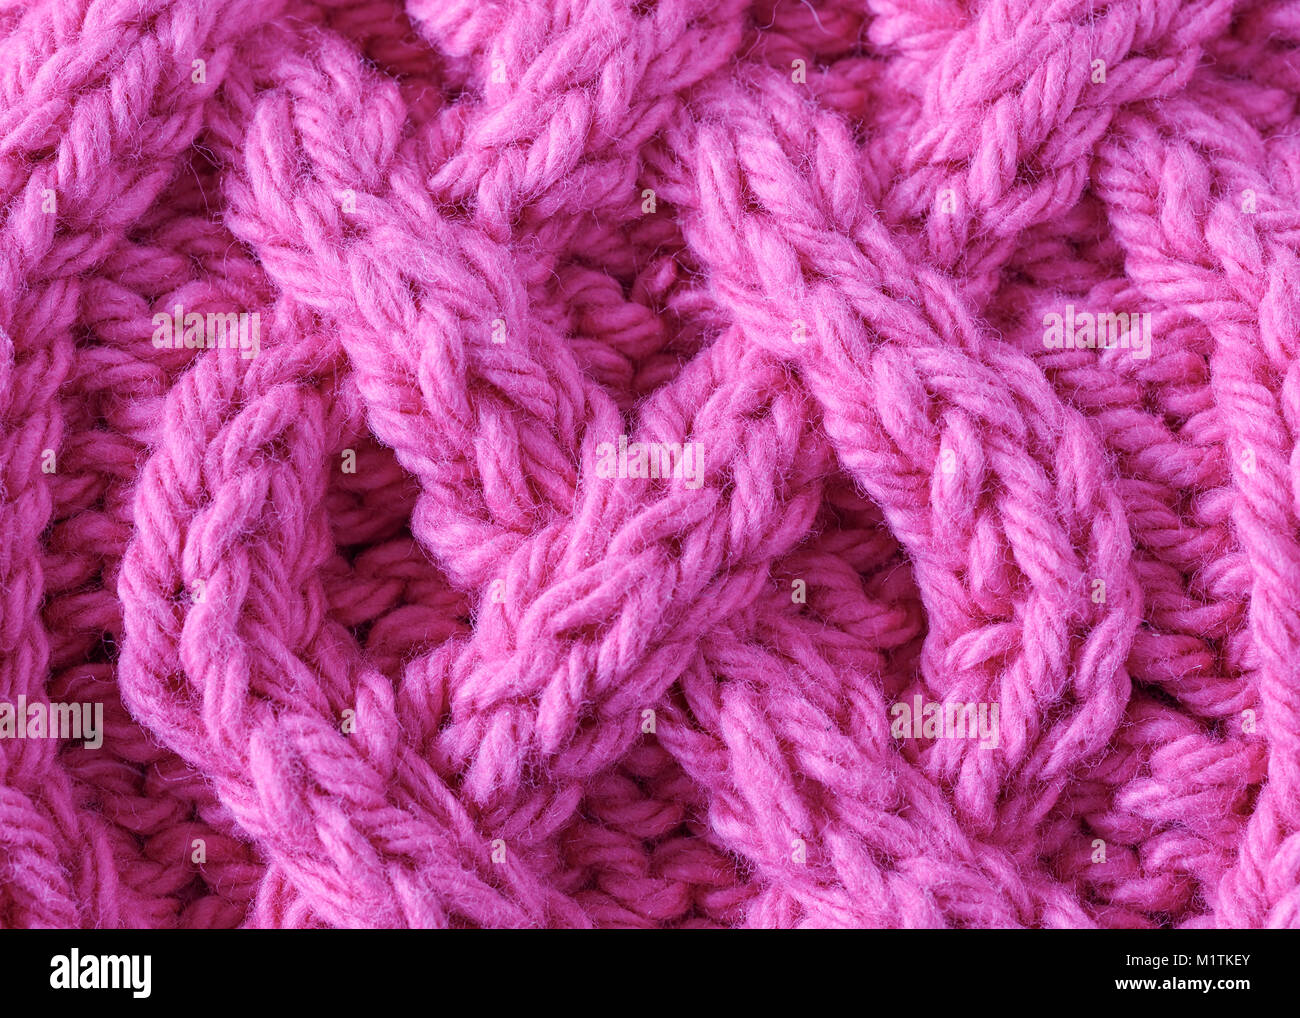 Cable Knitting Stock Photos & Cable Knitting Stock Images - Alamy